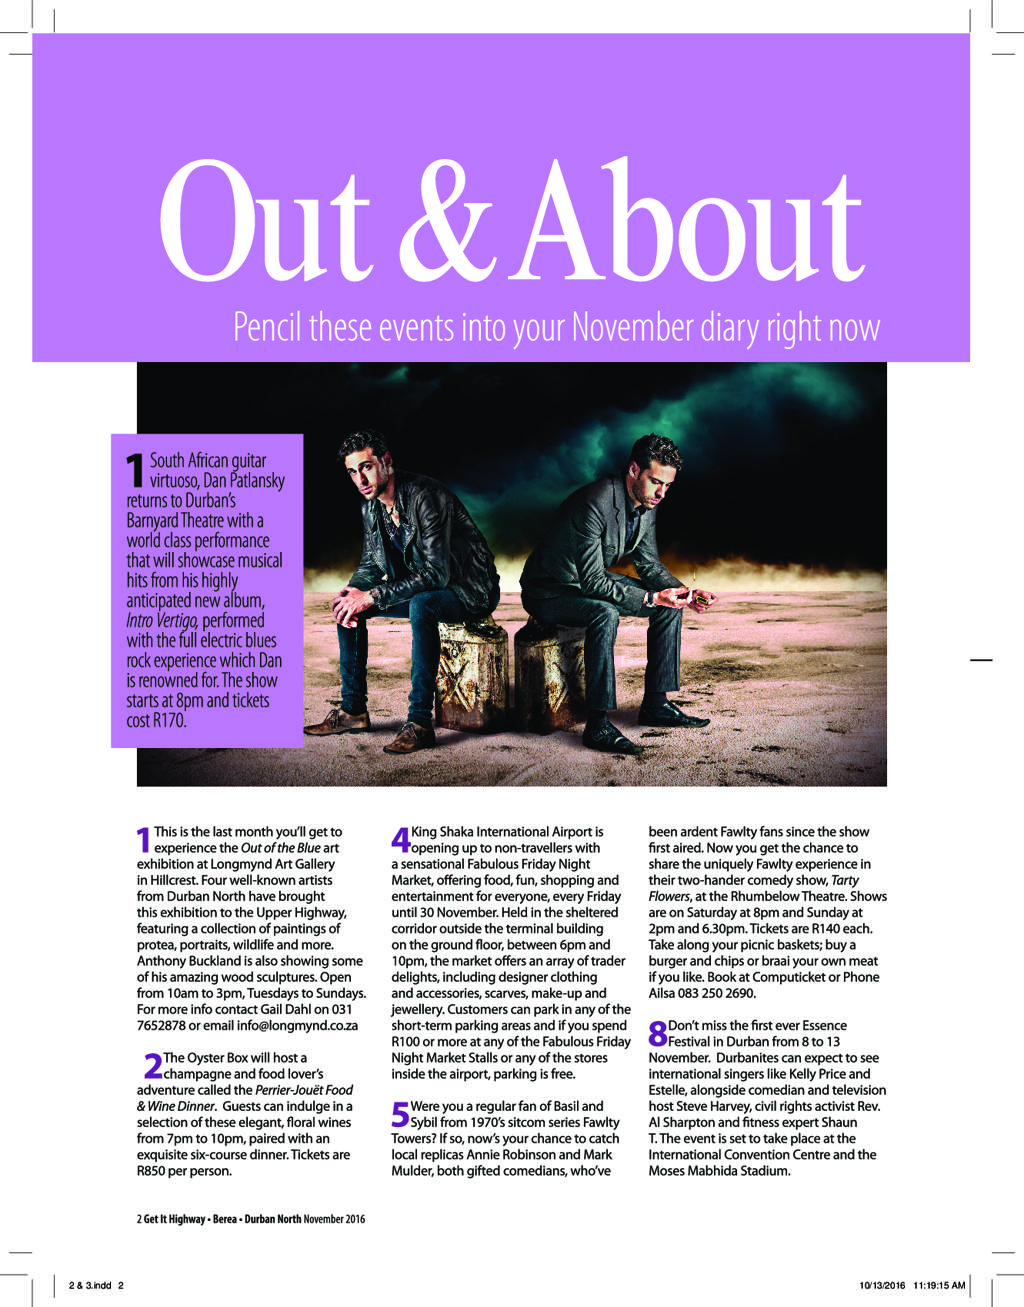 durban-get-it-magazine-november-2016-epapers-page-4